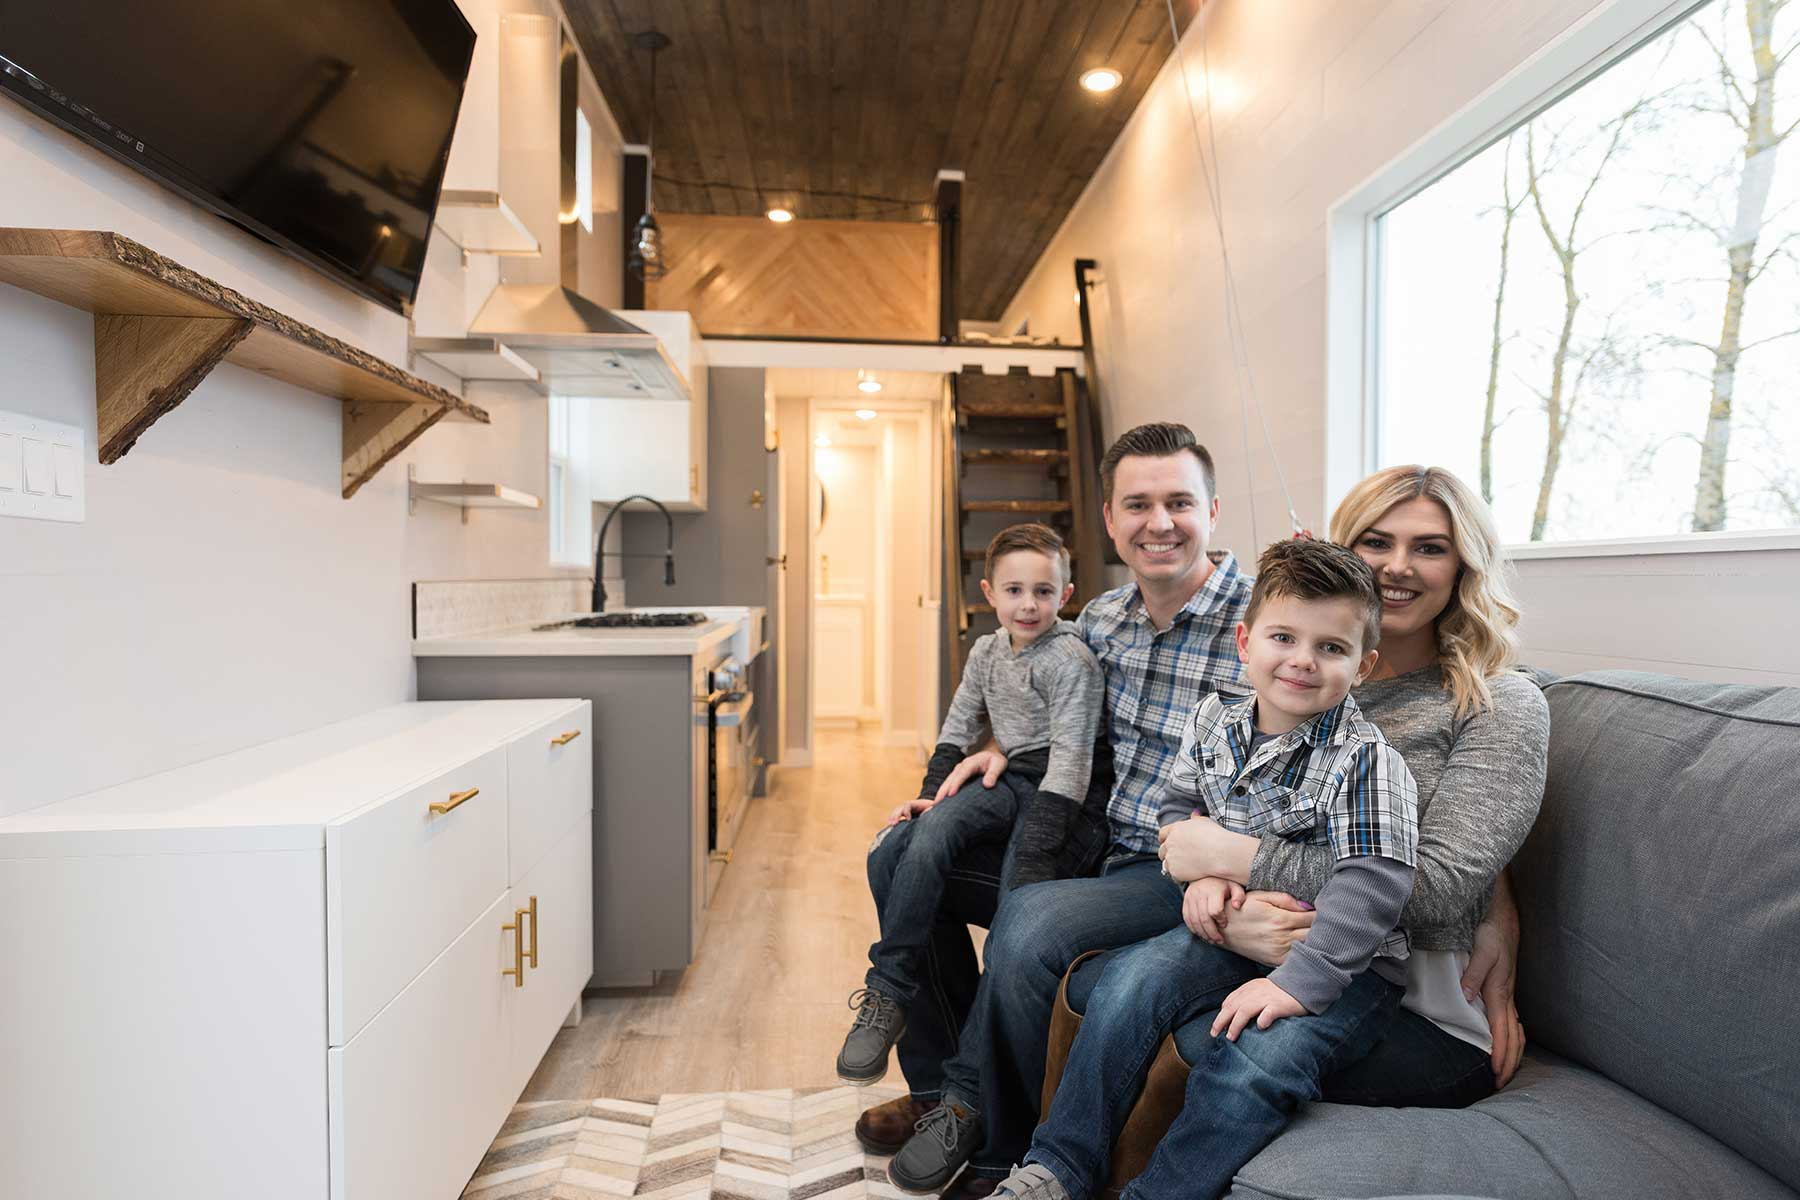 Introducing the cayman a tiny home for the whole family for Tiny house blog family